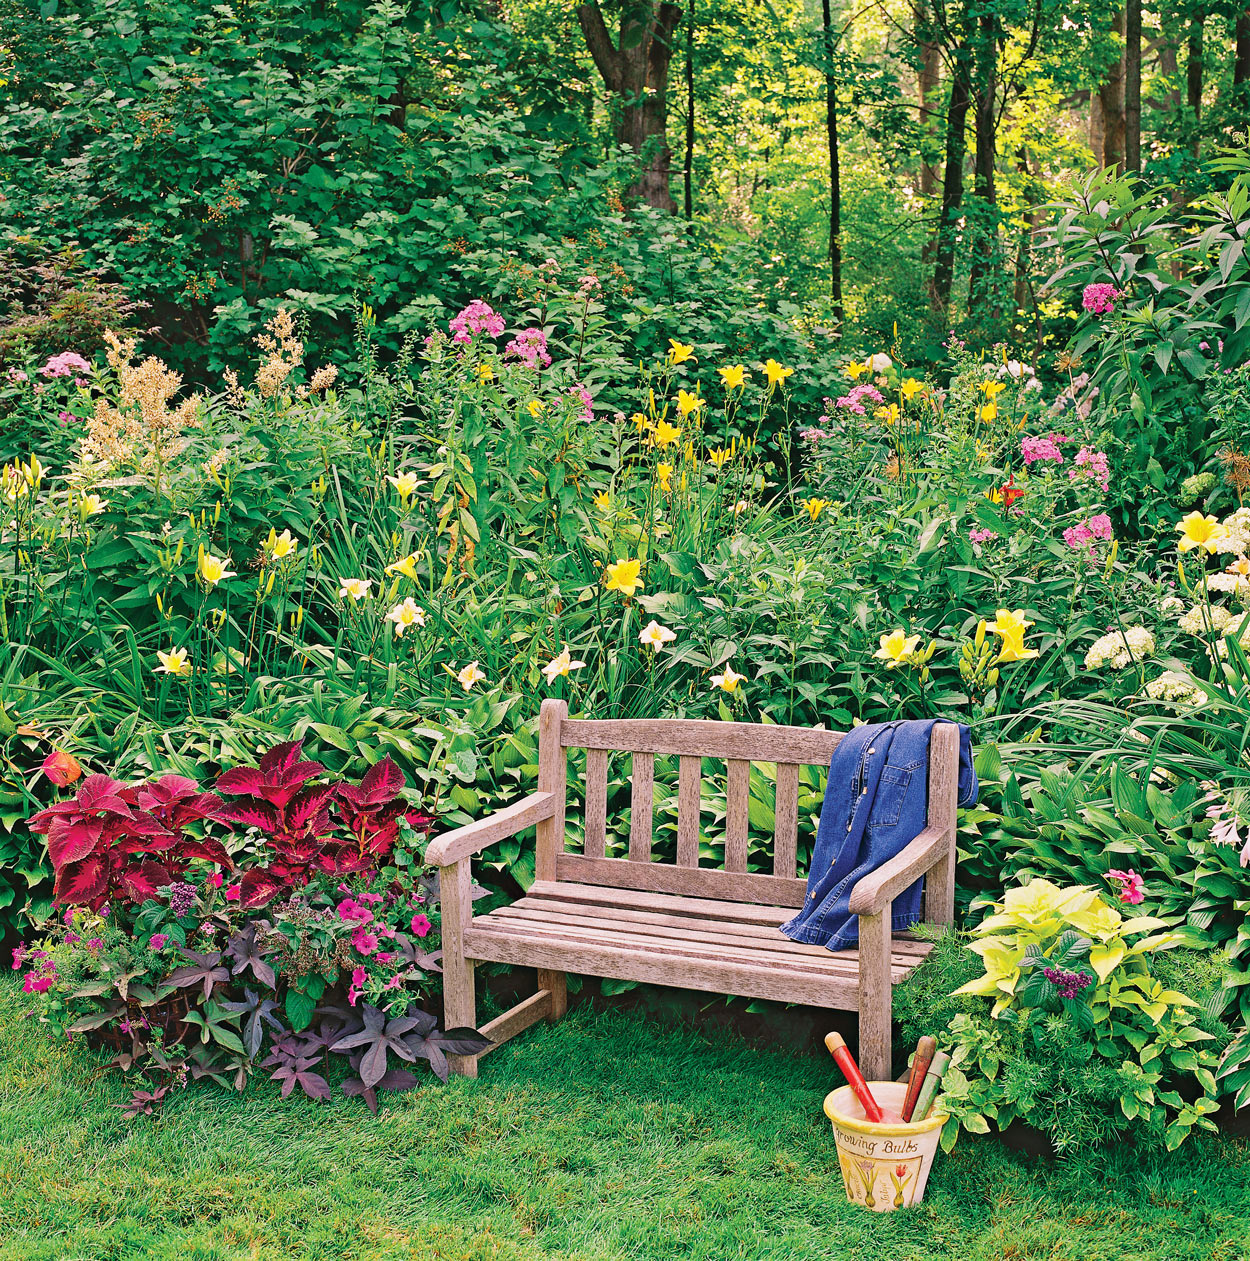 wood garden bench among plants